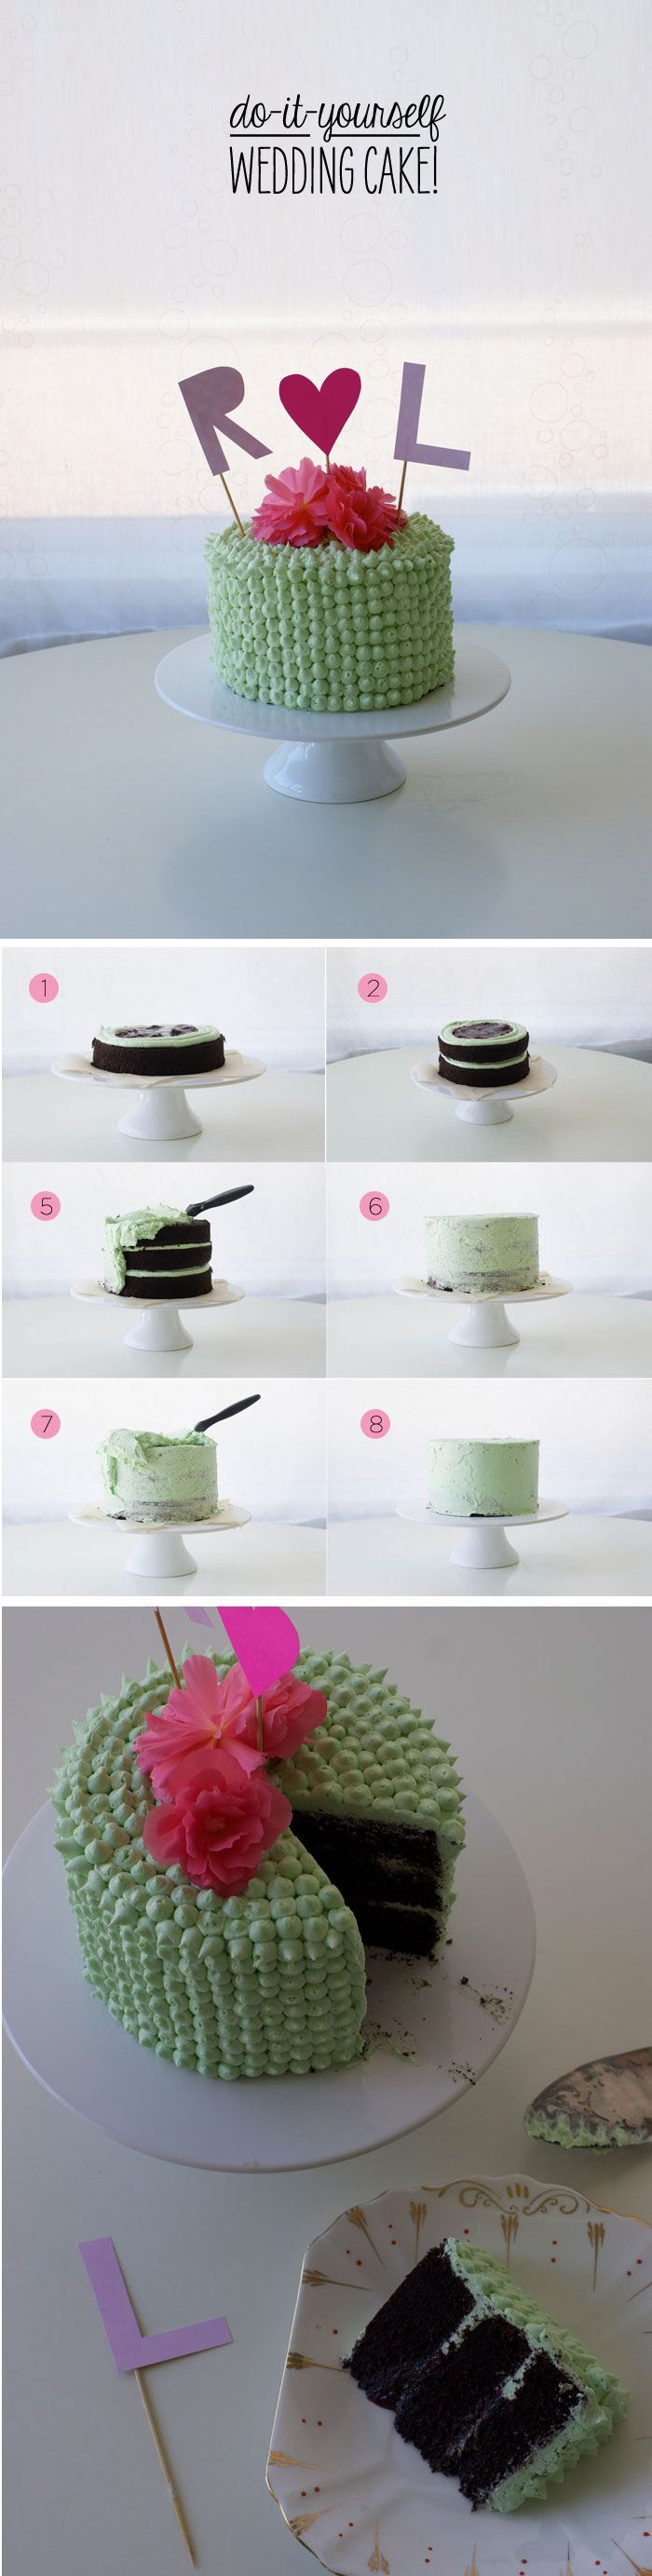 Do It Yourself Wedding: Do-it-yourself Wedding Cake! Make Your Best Friends (or